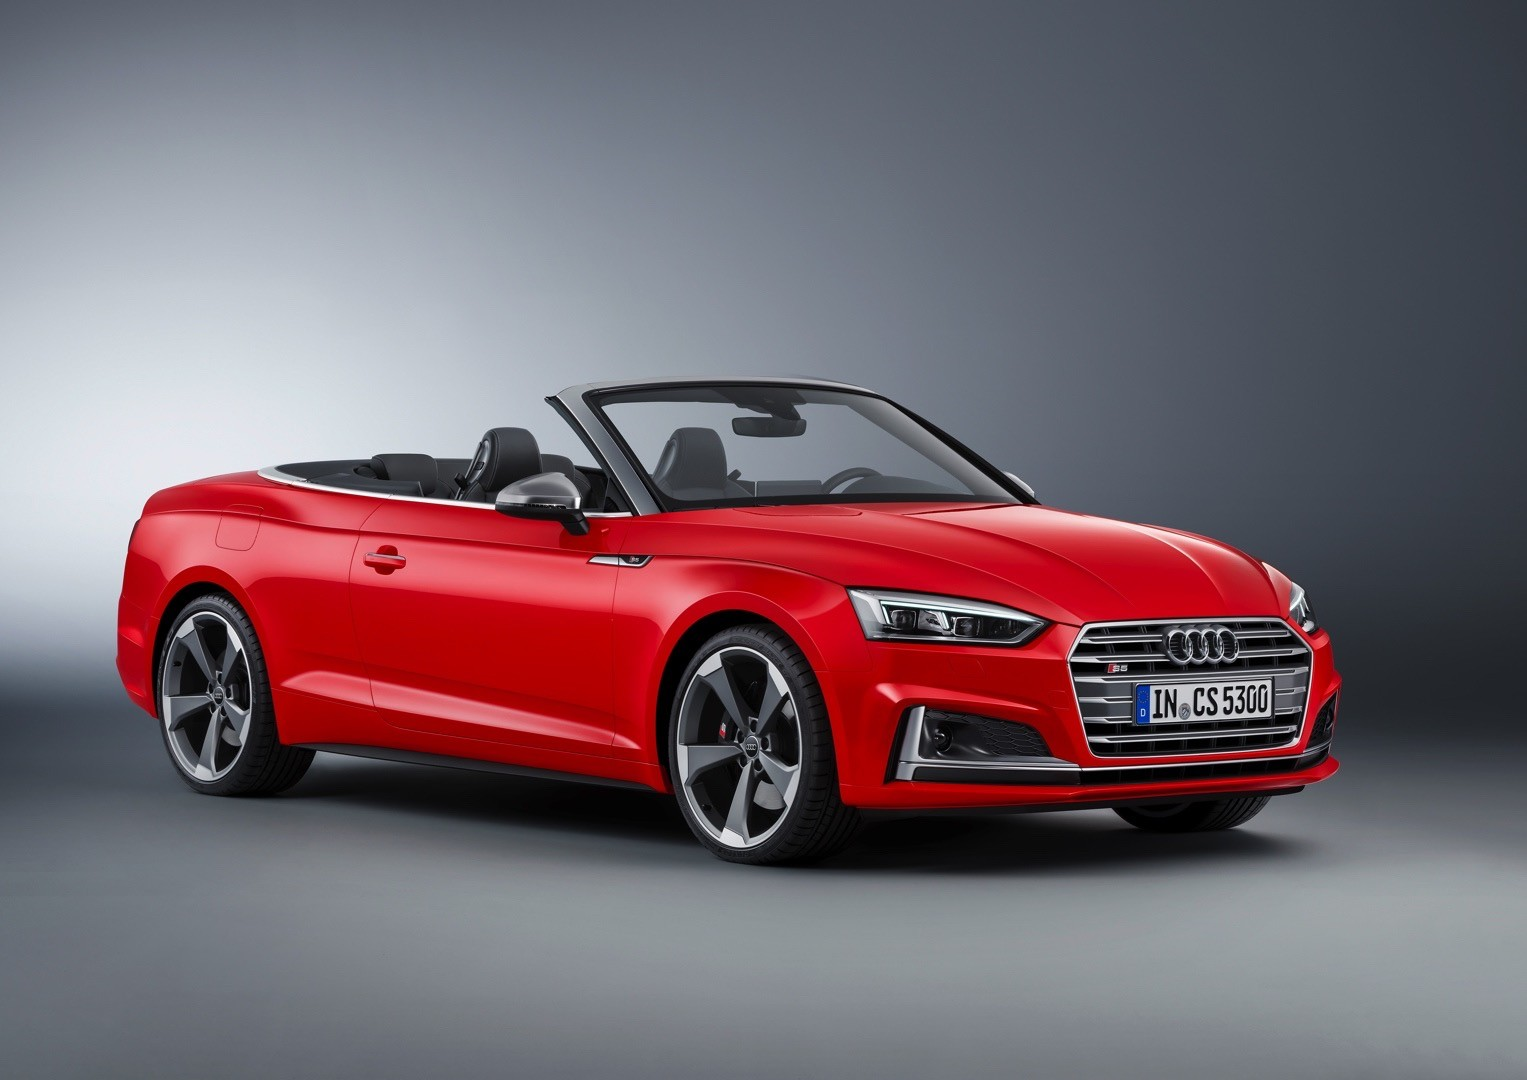 2017-audi-a5-cabriolet-and-2017-audi-s5-cabriolet-presented-ahead-of ...